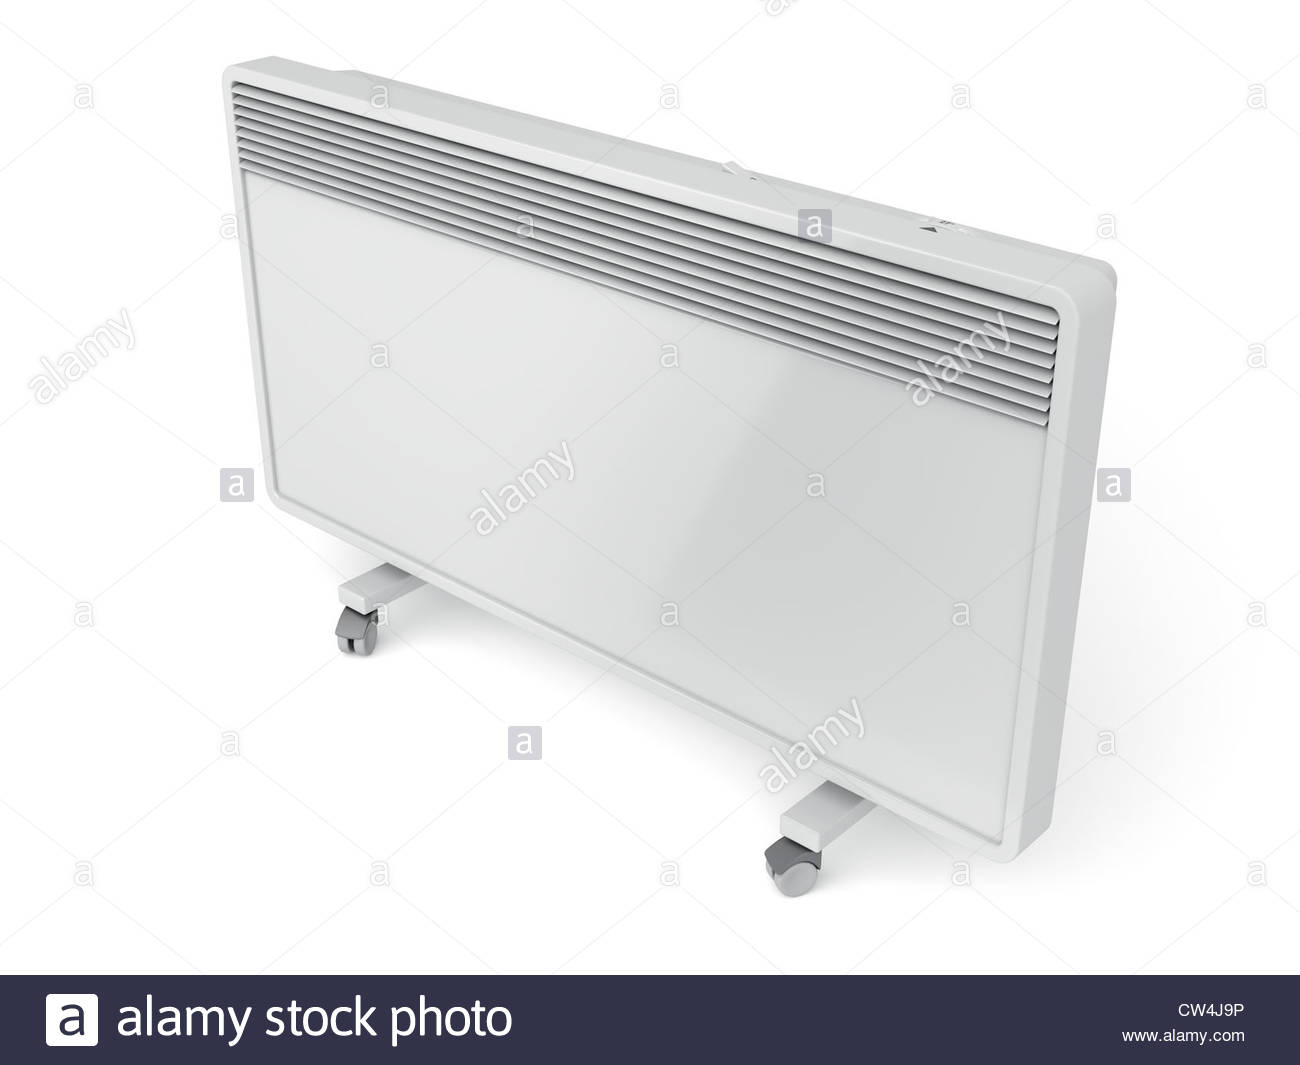 Mobile convection heater on white background Stock Photo 49889330 1300x1065